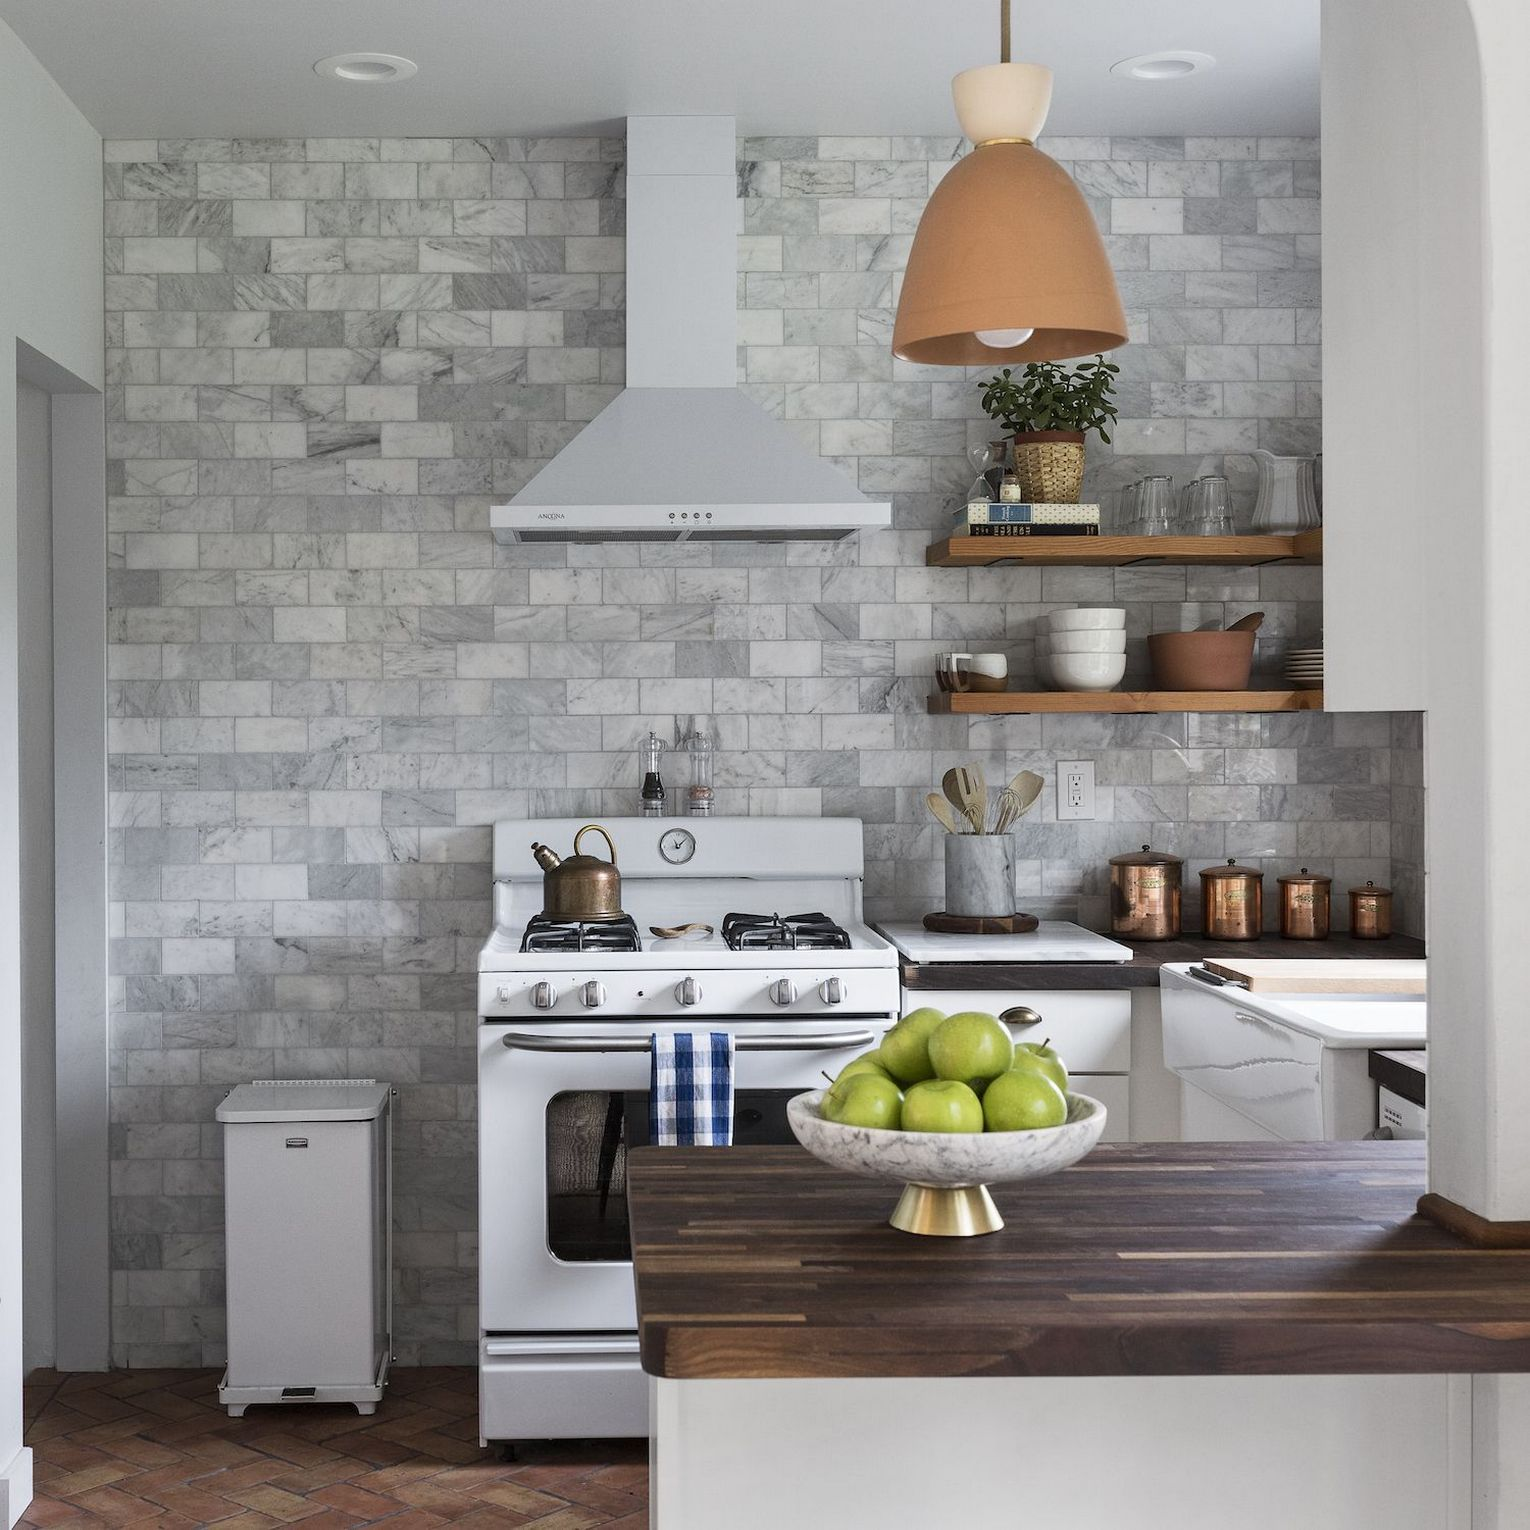 50+ Awesome Saltillo Tile Floor Ideas for Your Home